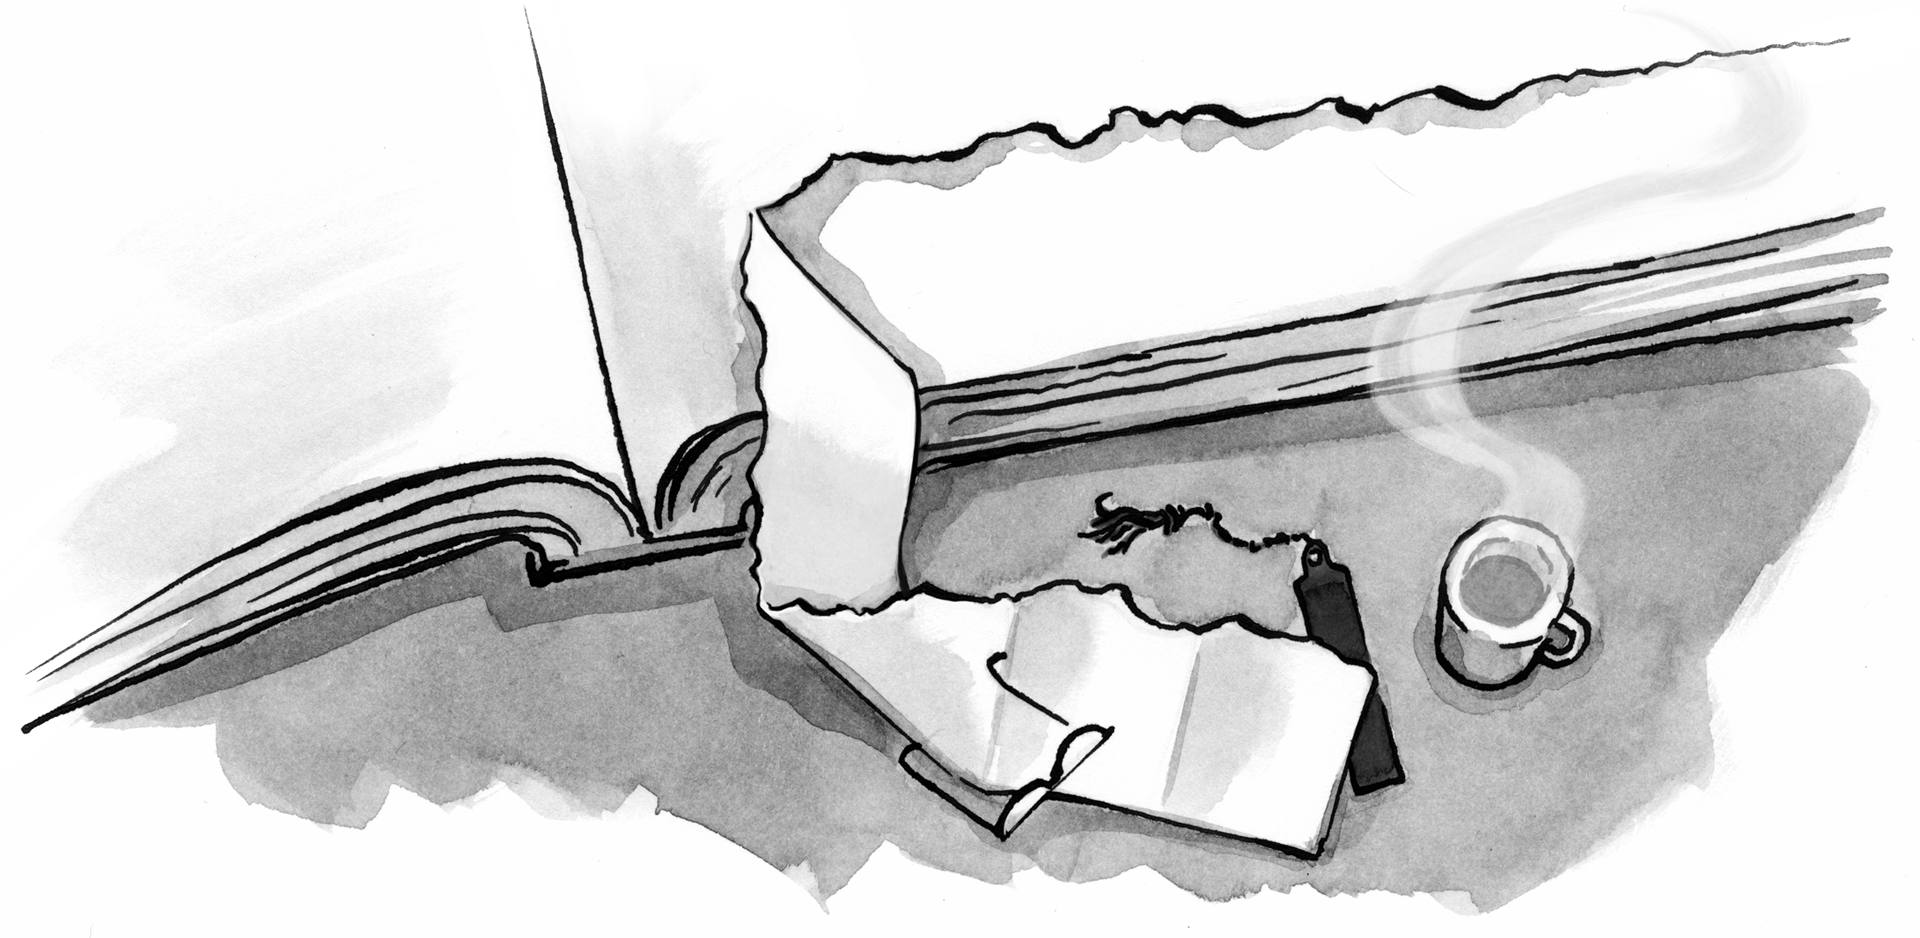 Illustration: A large piece of paper torn from a book